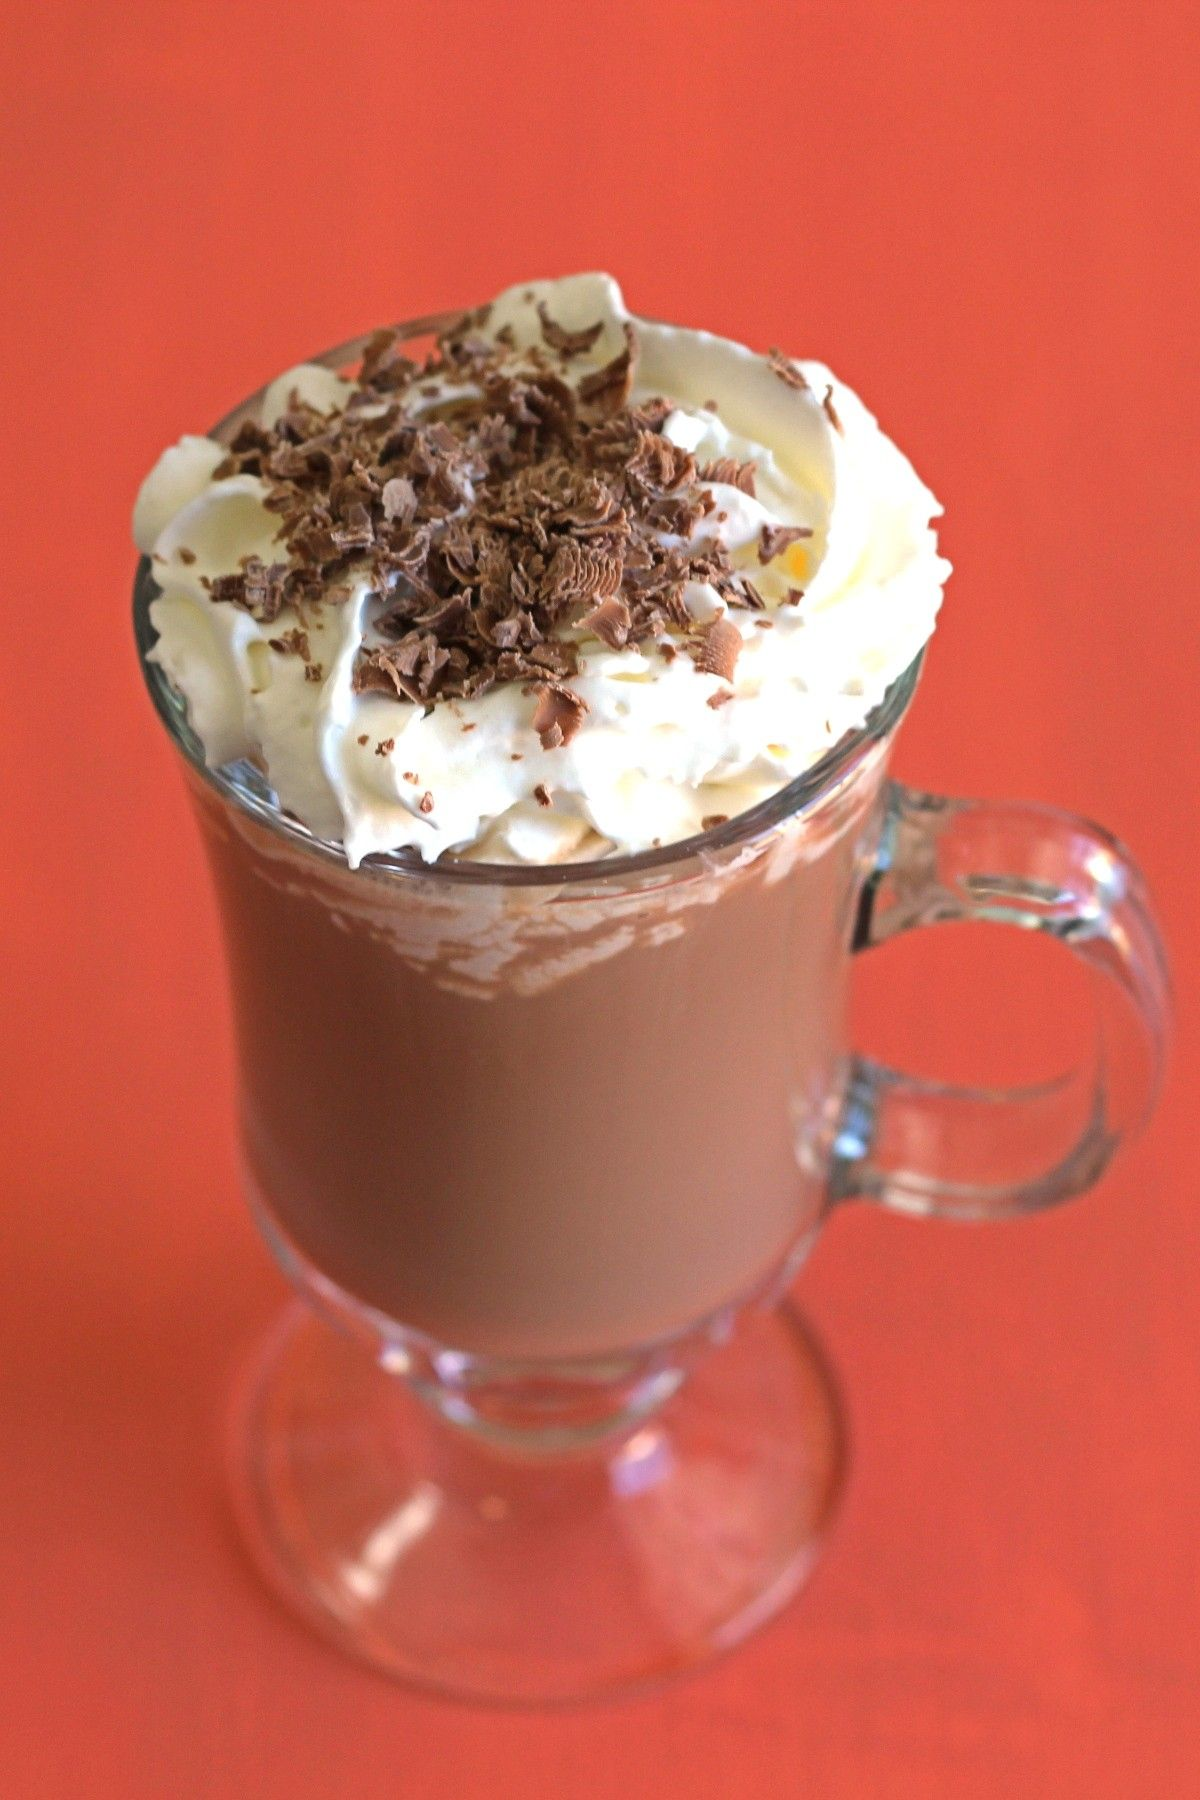 Dark brown creamy cocktail with whipped cream in Irish coffee mug aginst starry backdrop